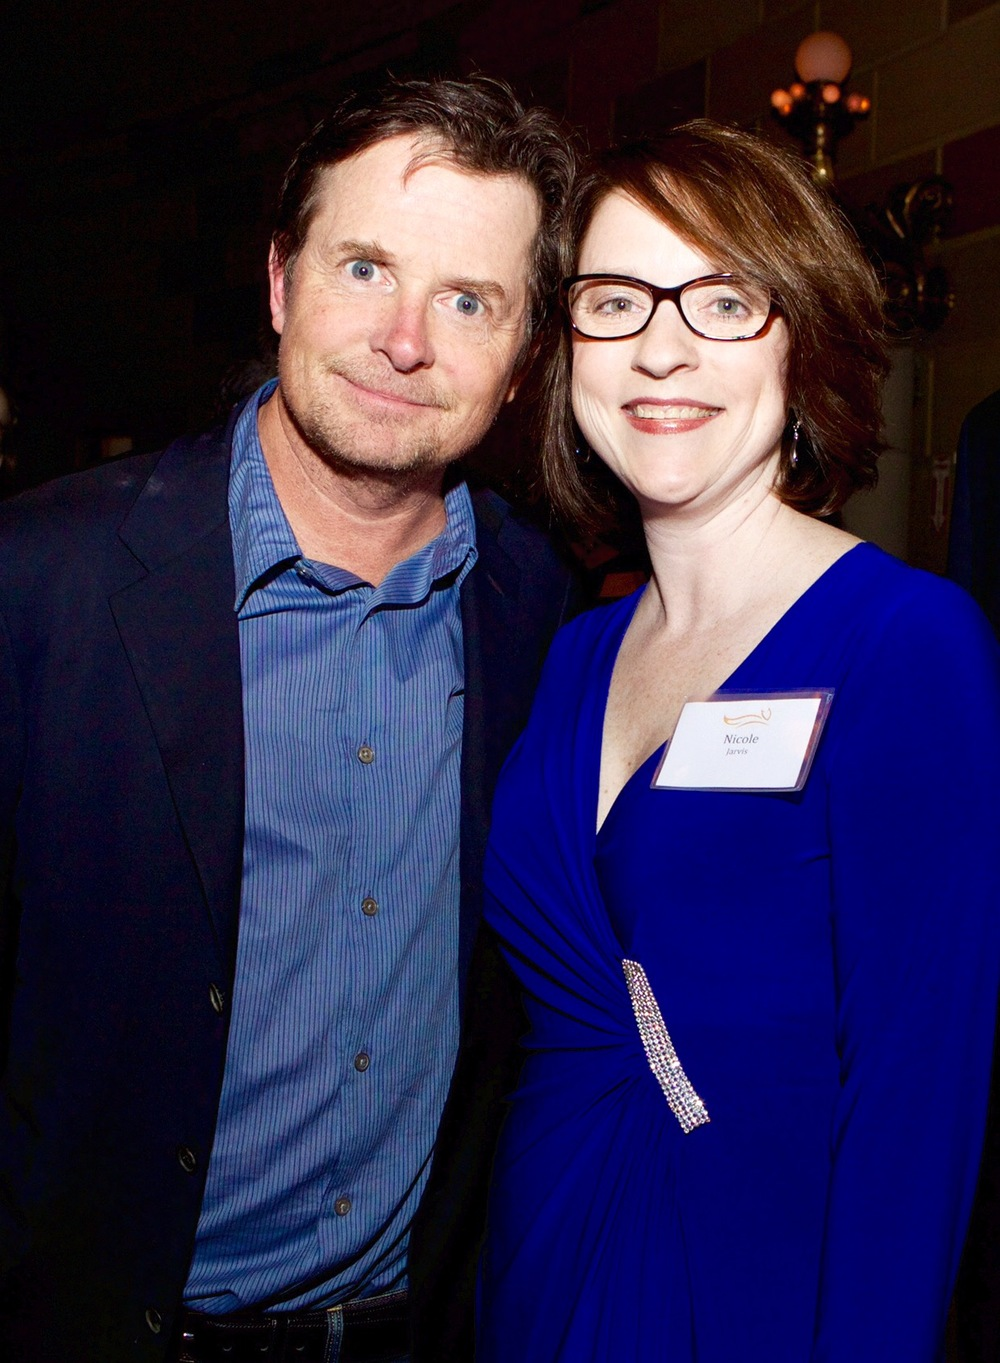 Nicole Jarvis and Michael J. Fox in 2015.